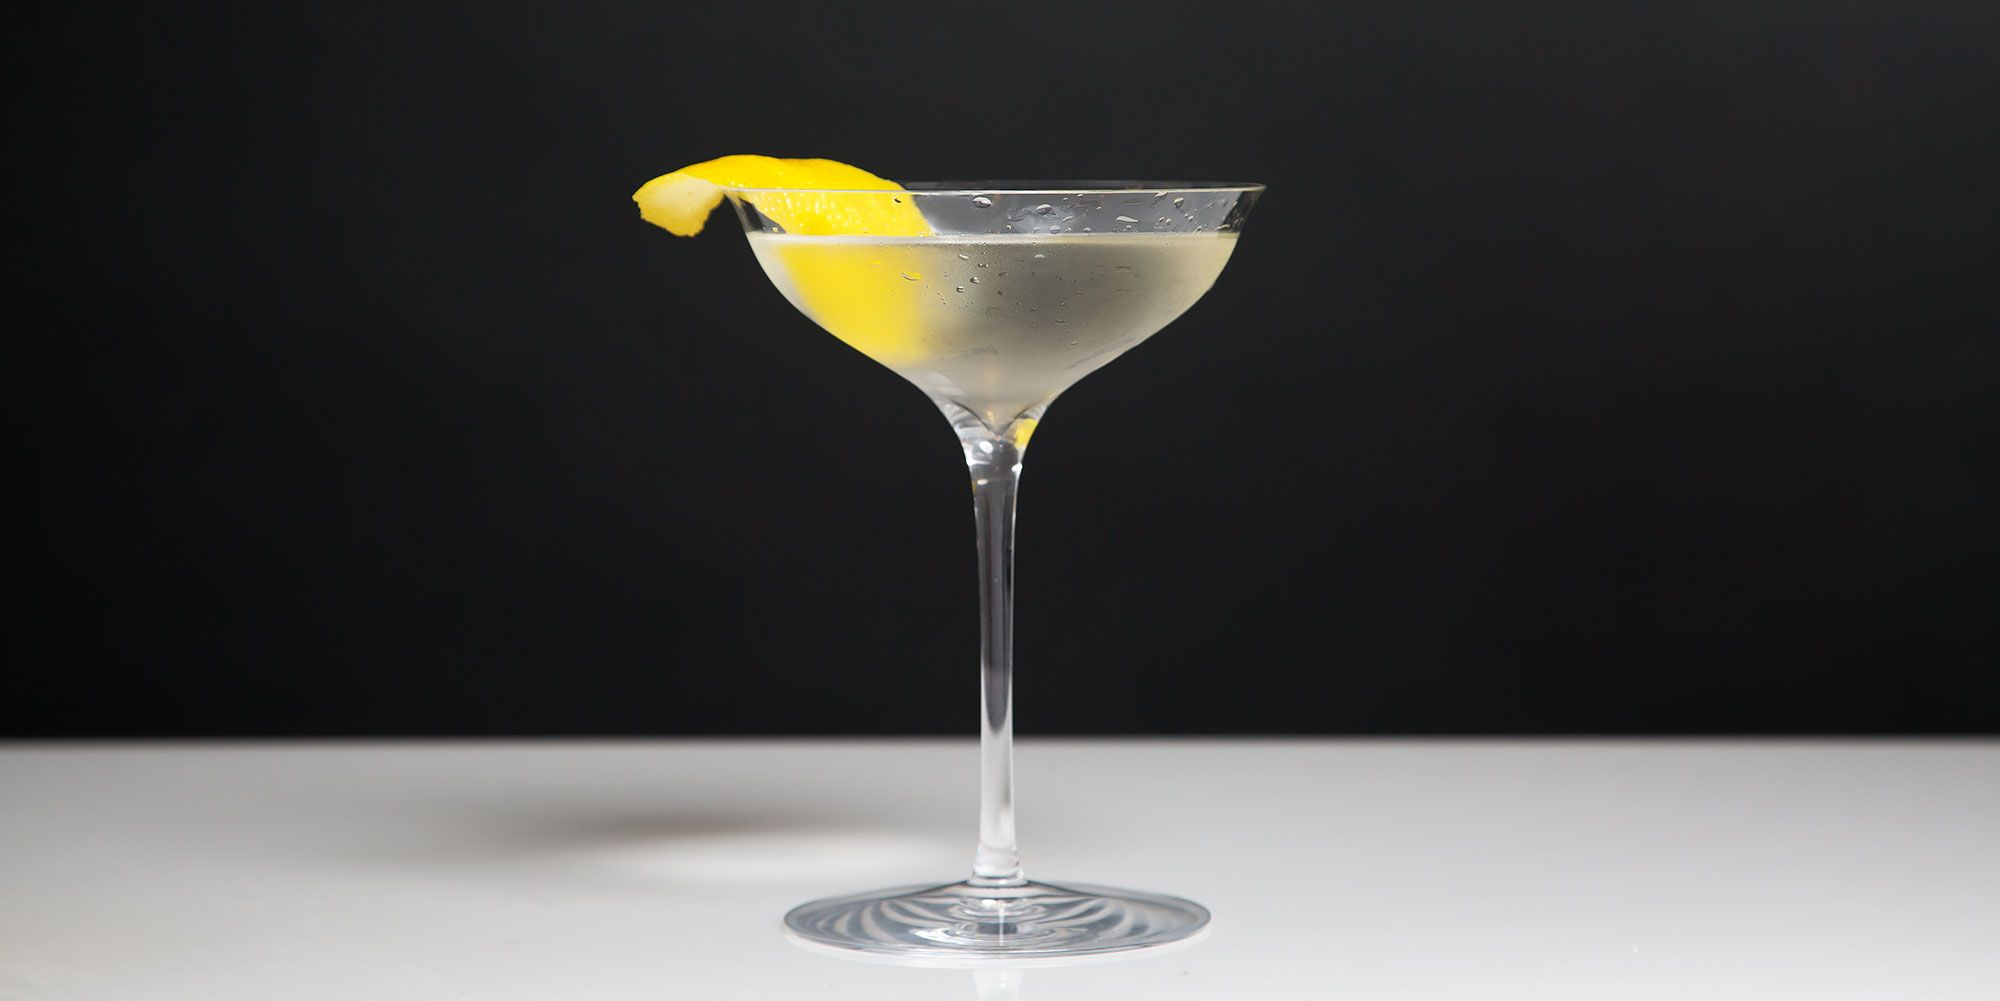 What is the best to drink martini 61